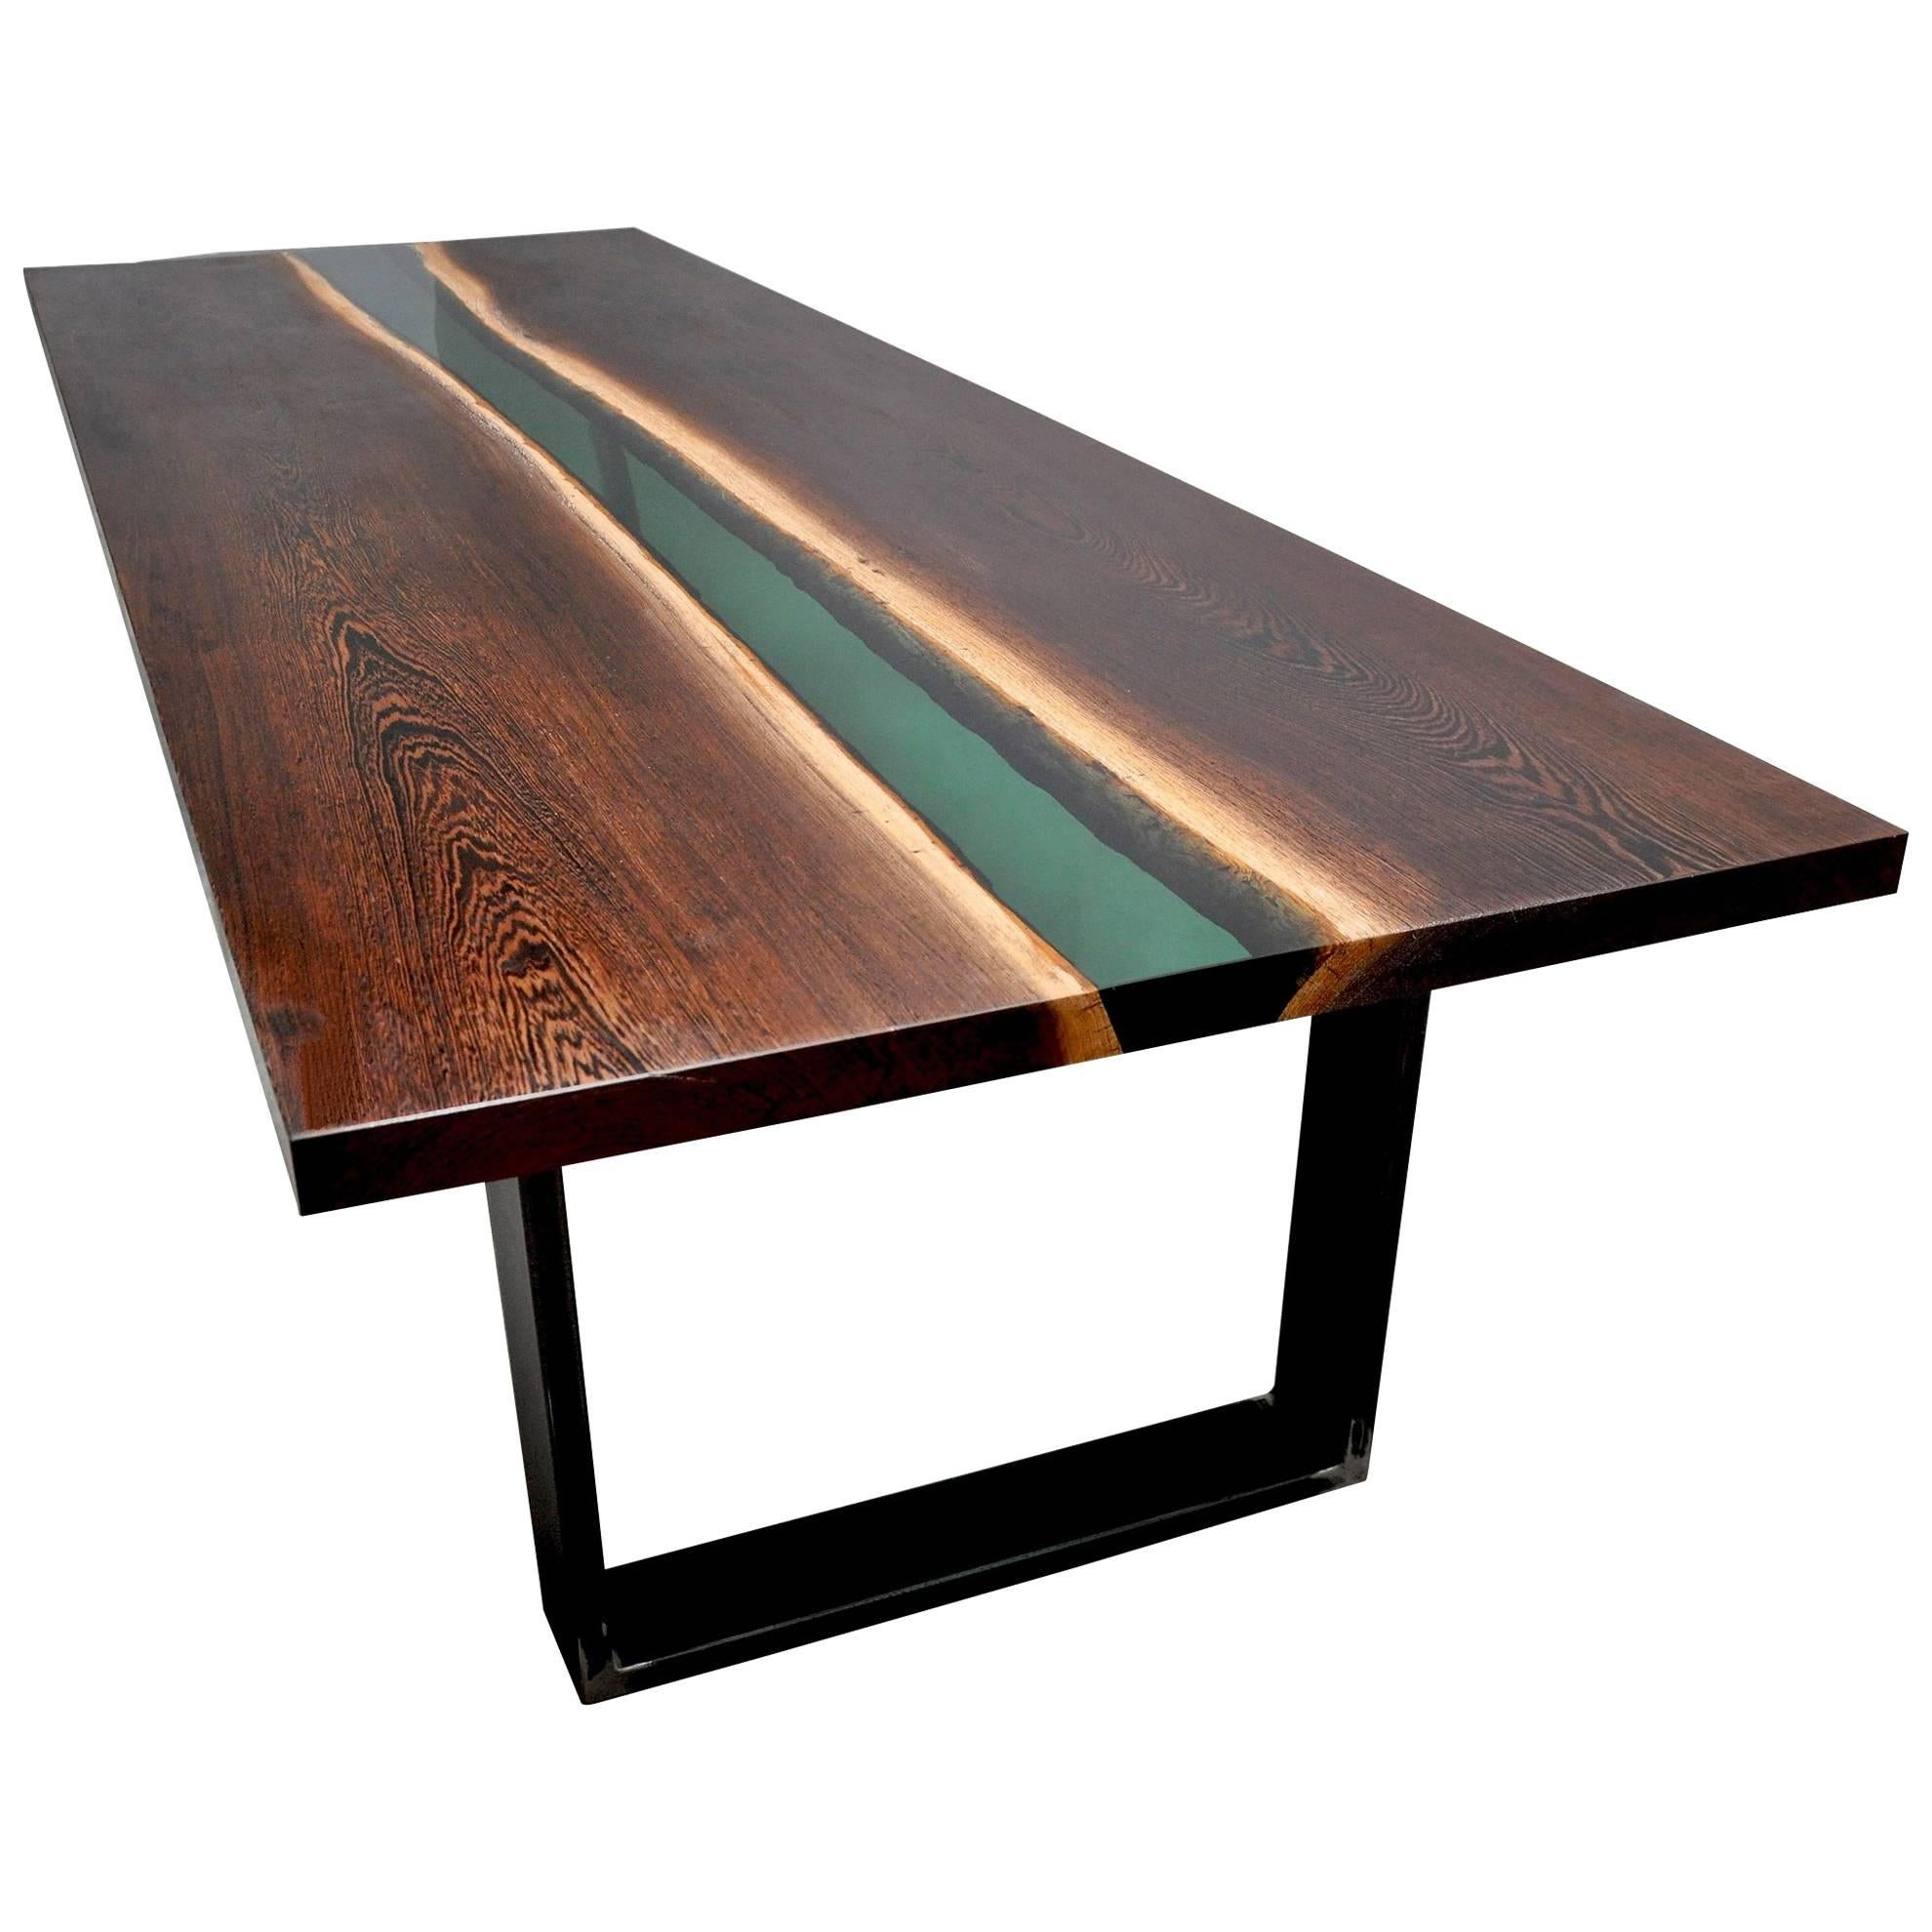 Emerald Forest Dinning Table or Conference Table in Wenge Wood and Resin